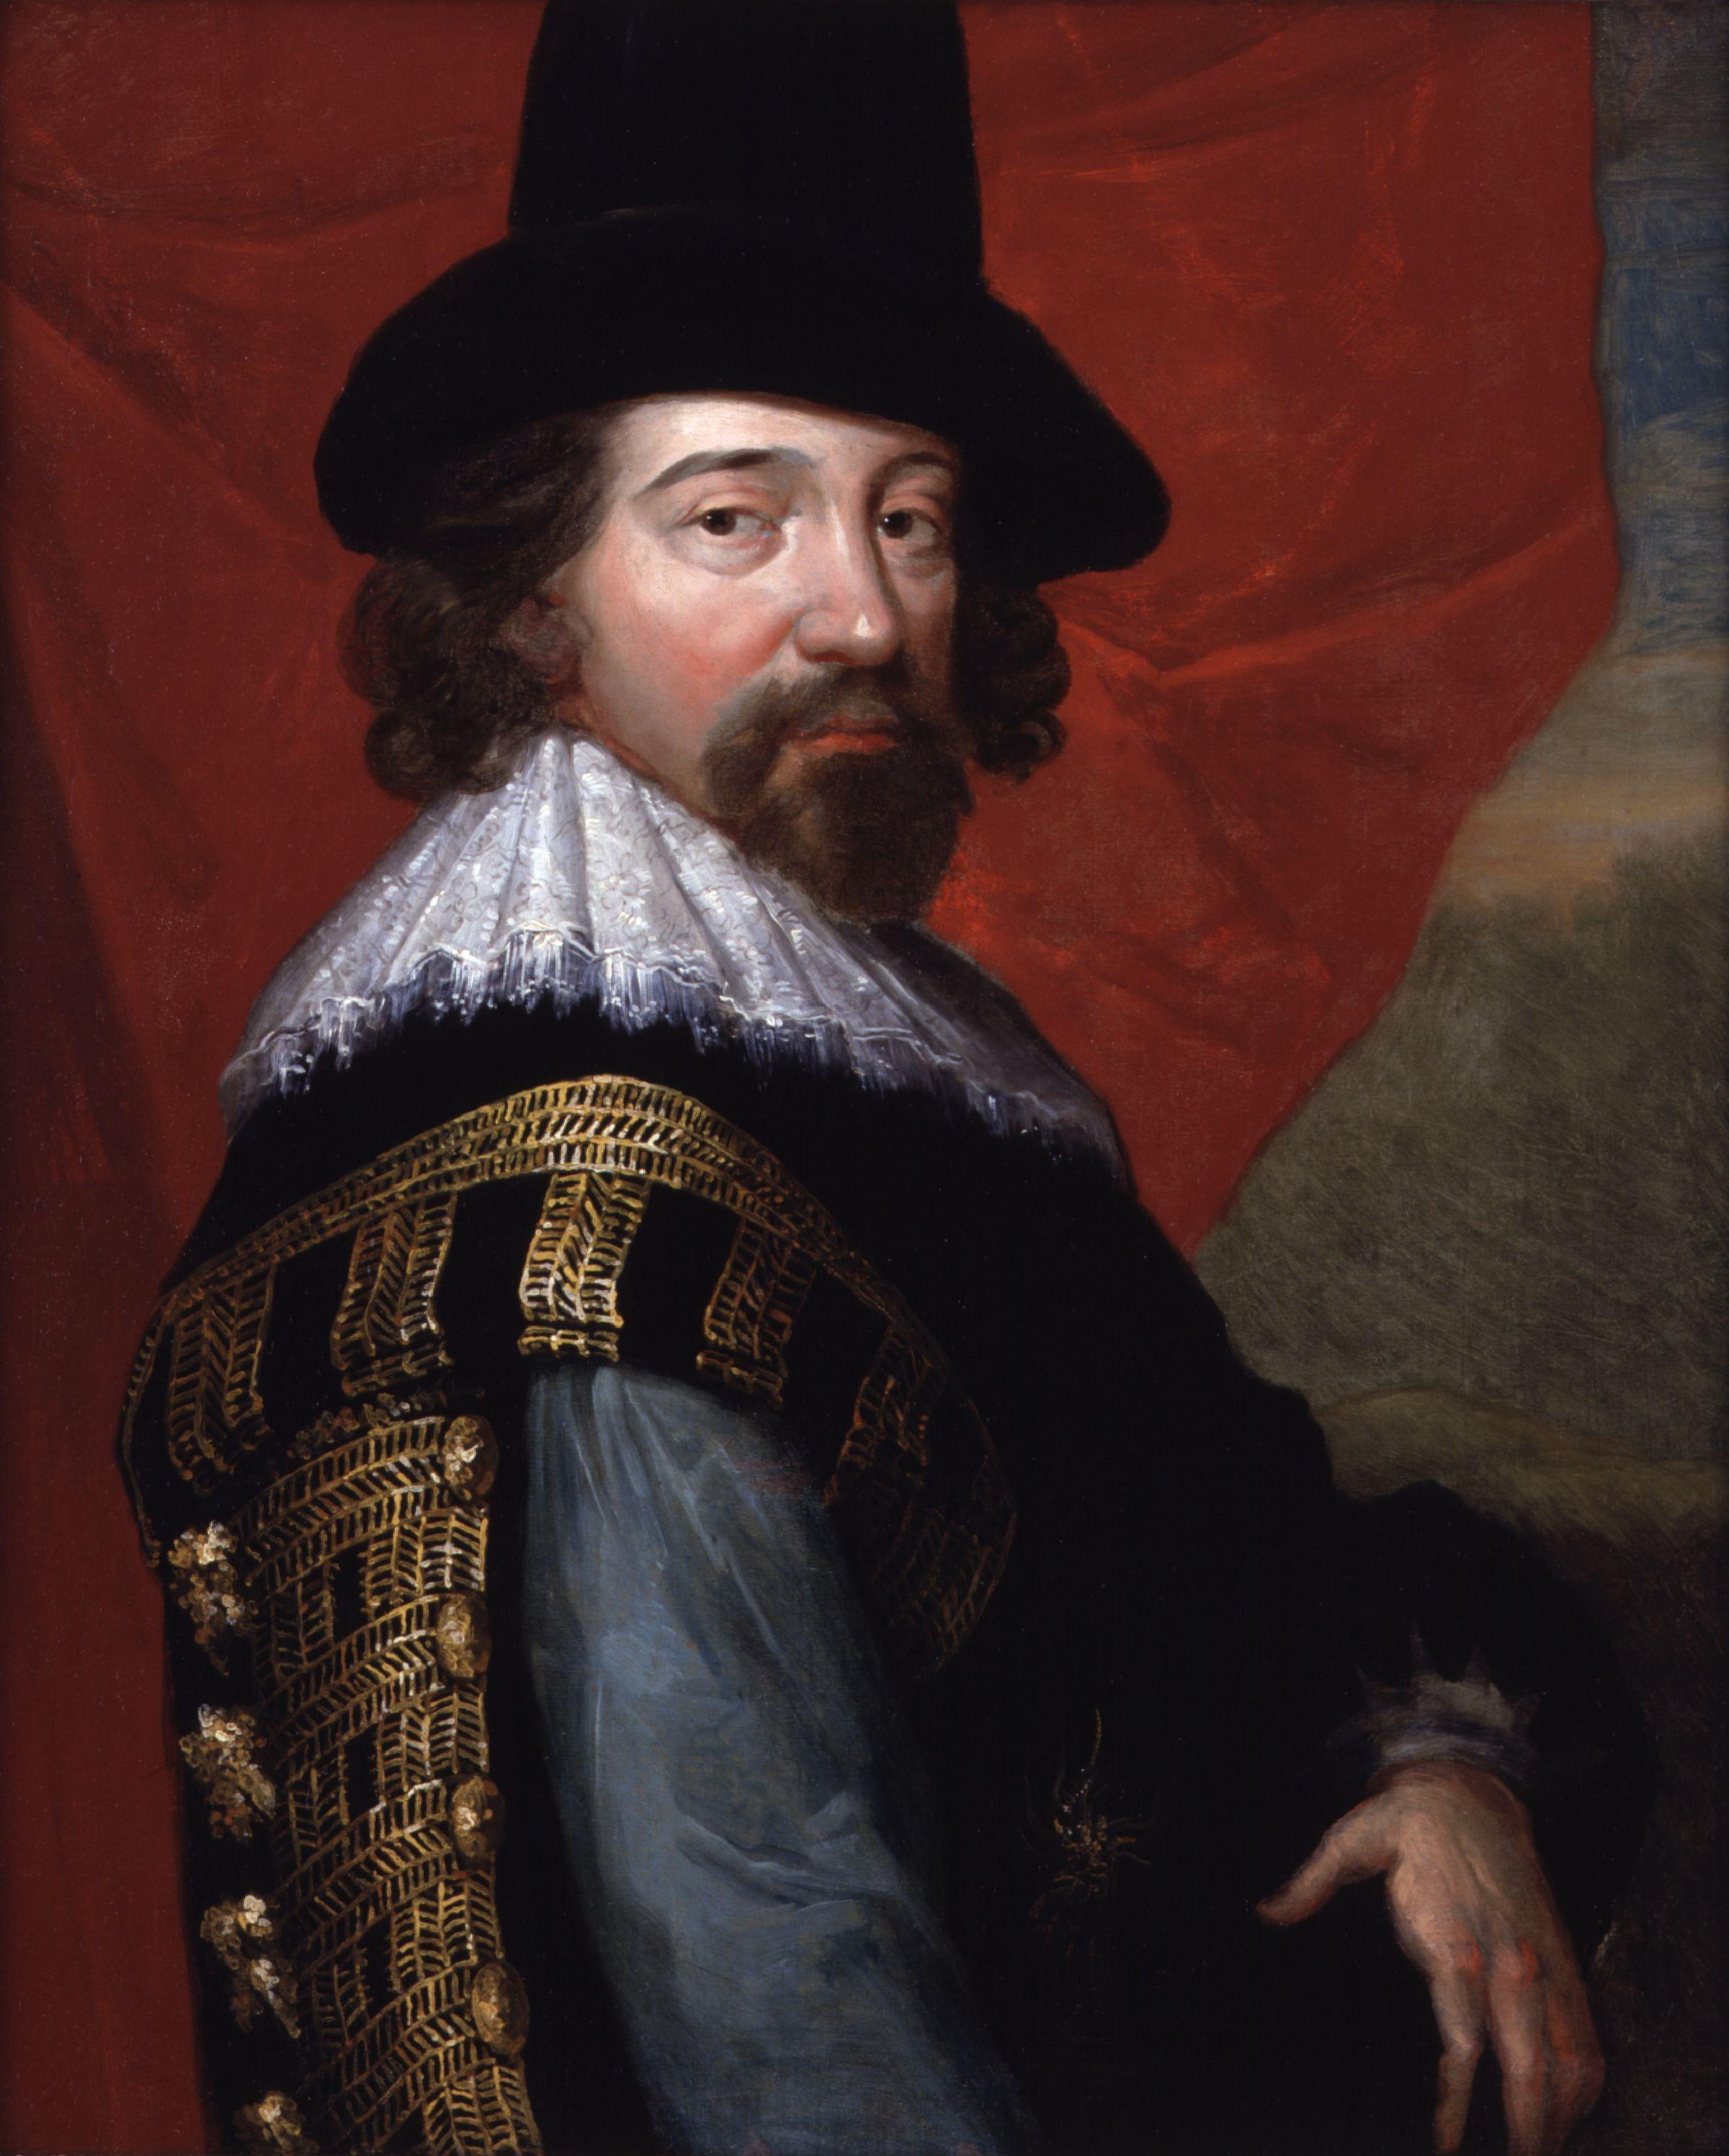 http://upload.wikimedia.org/wikipedia/commons/1/11/Francis_Bacon%2C_Viscount_St_Alban_from_NPG_%282%29.jpg